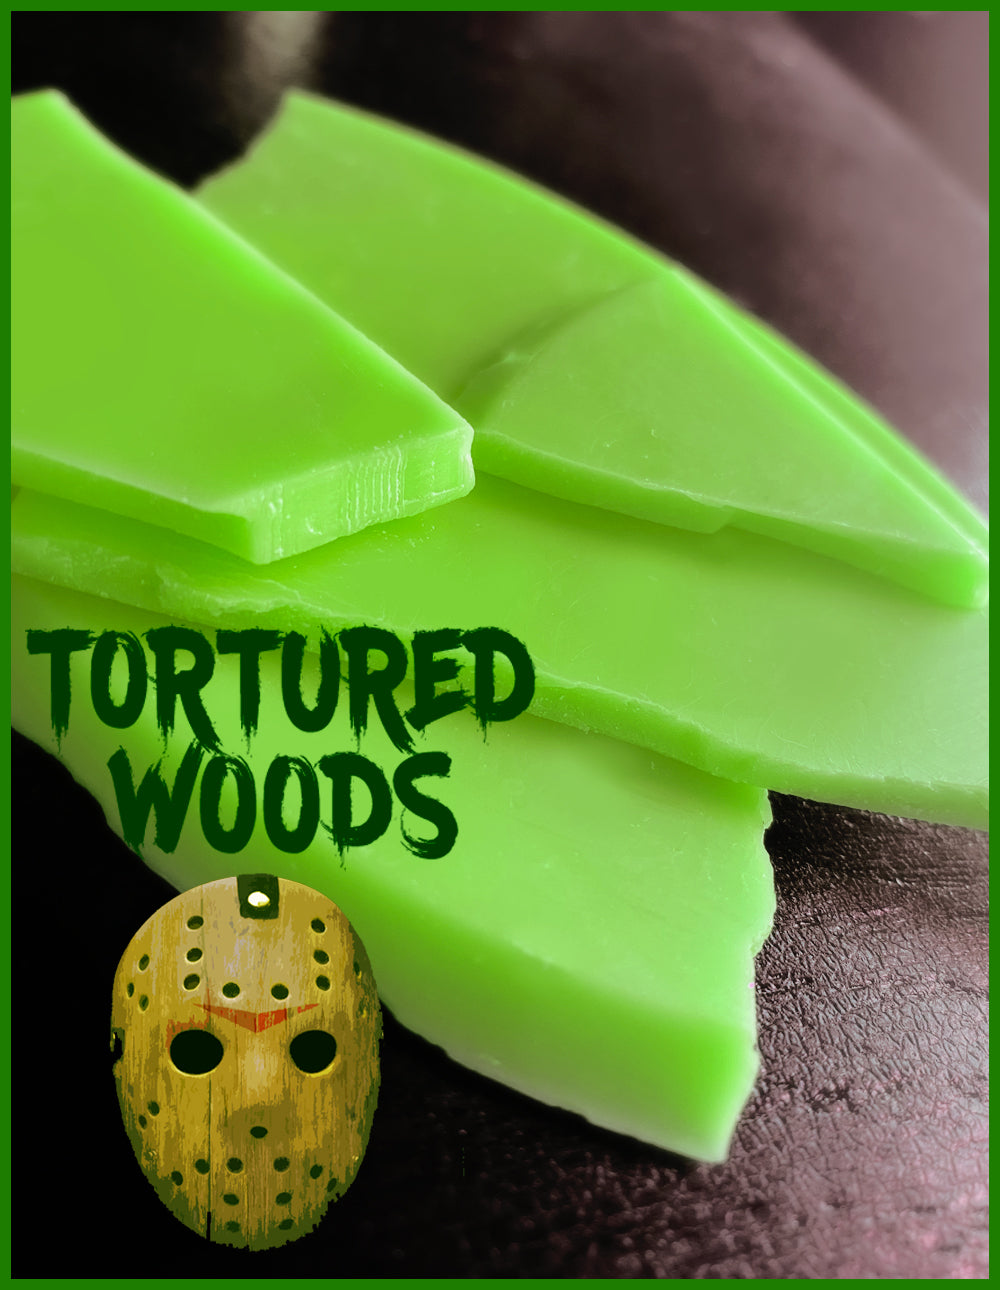 TORTURED WOODS SCENTED WAX BARK